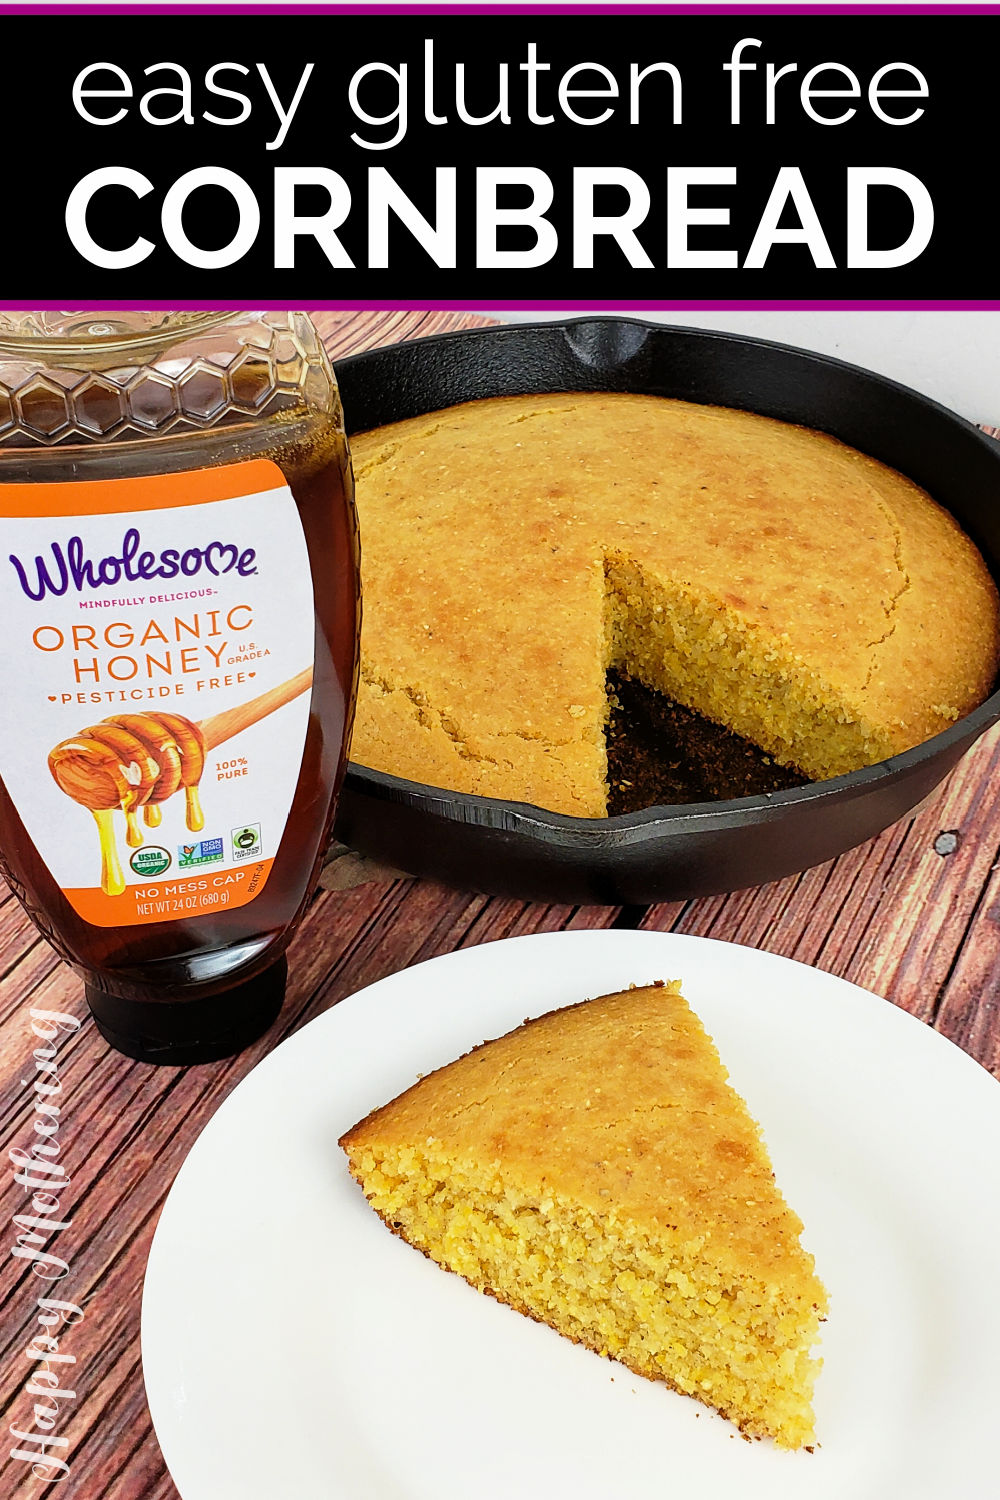 Slice of cornbread on plate in front of skillet with jar of honey.